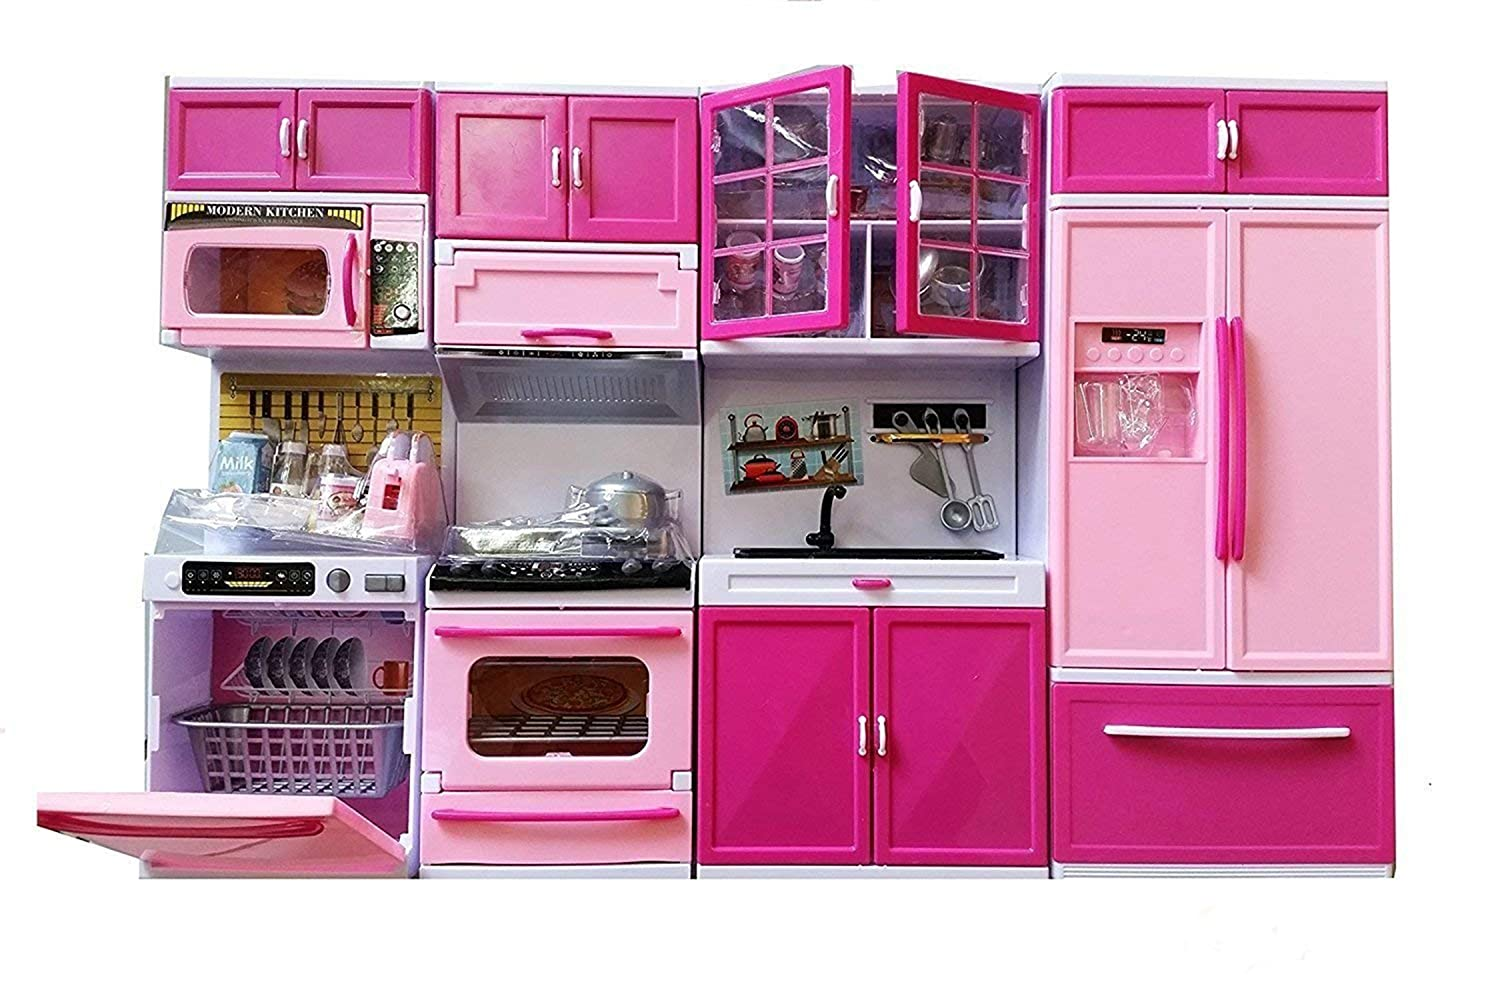 Buy happy giftmart large size 54 x 35 cm with 4 cabinet luxury kitchen set with light and sound online at low prices in india amazon in